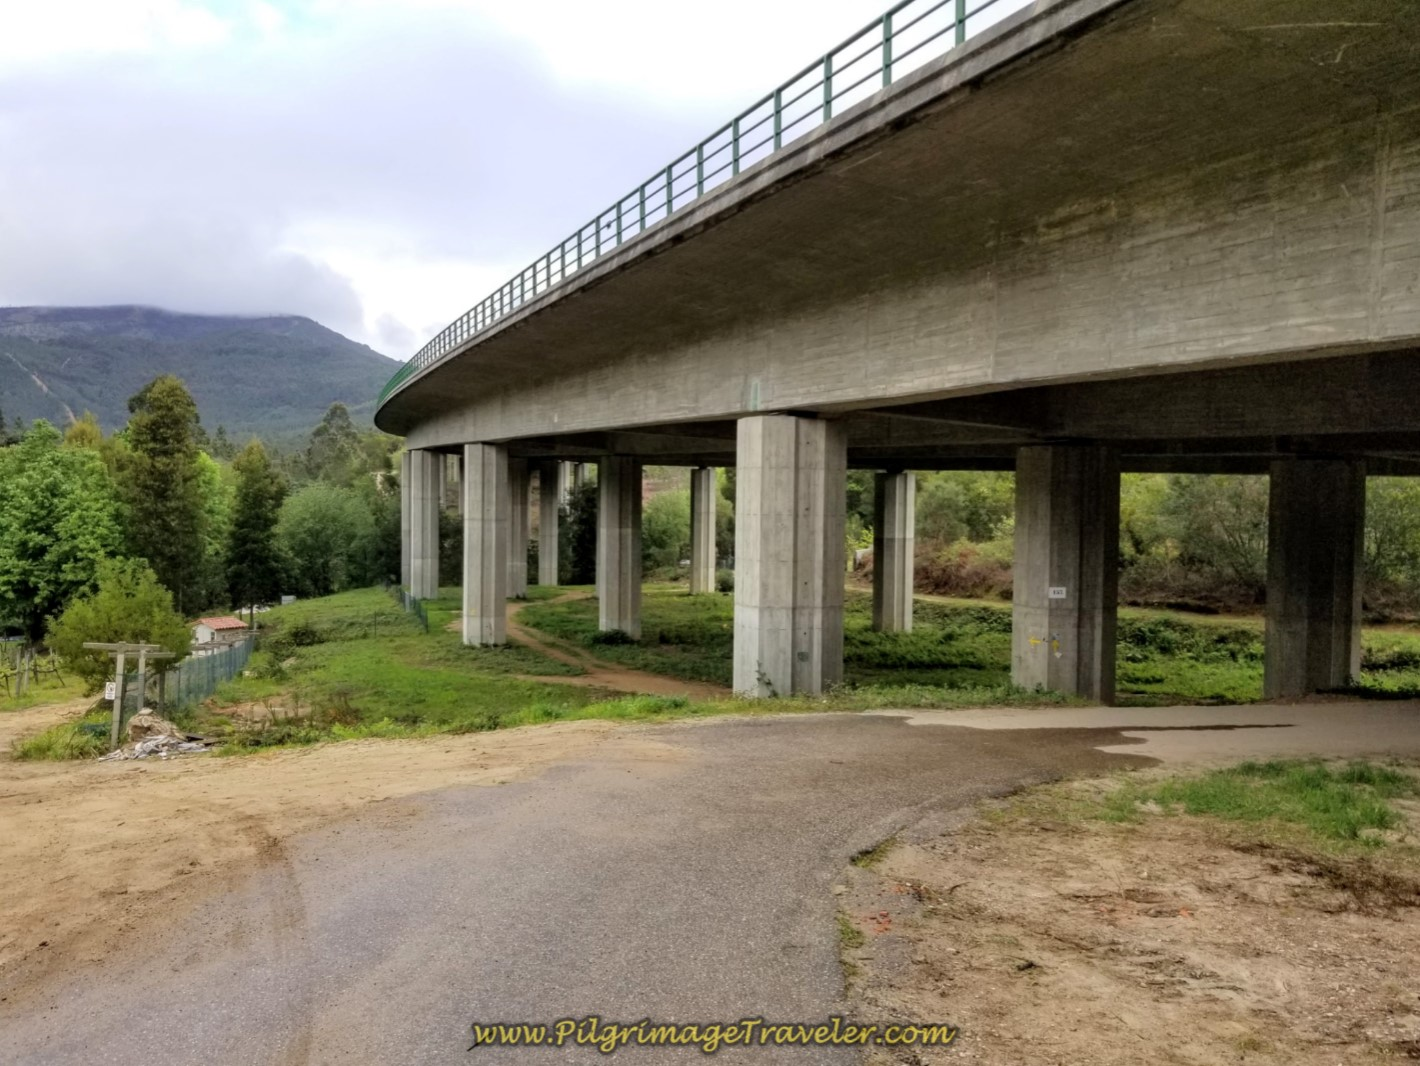 Camino Walks Under the A3 on day eighteen on the Central Route of the Portuguese Camino